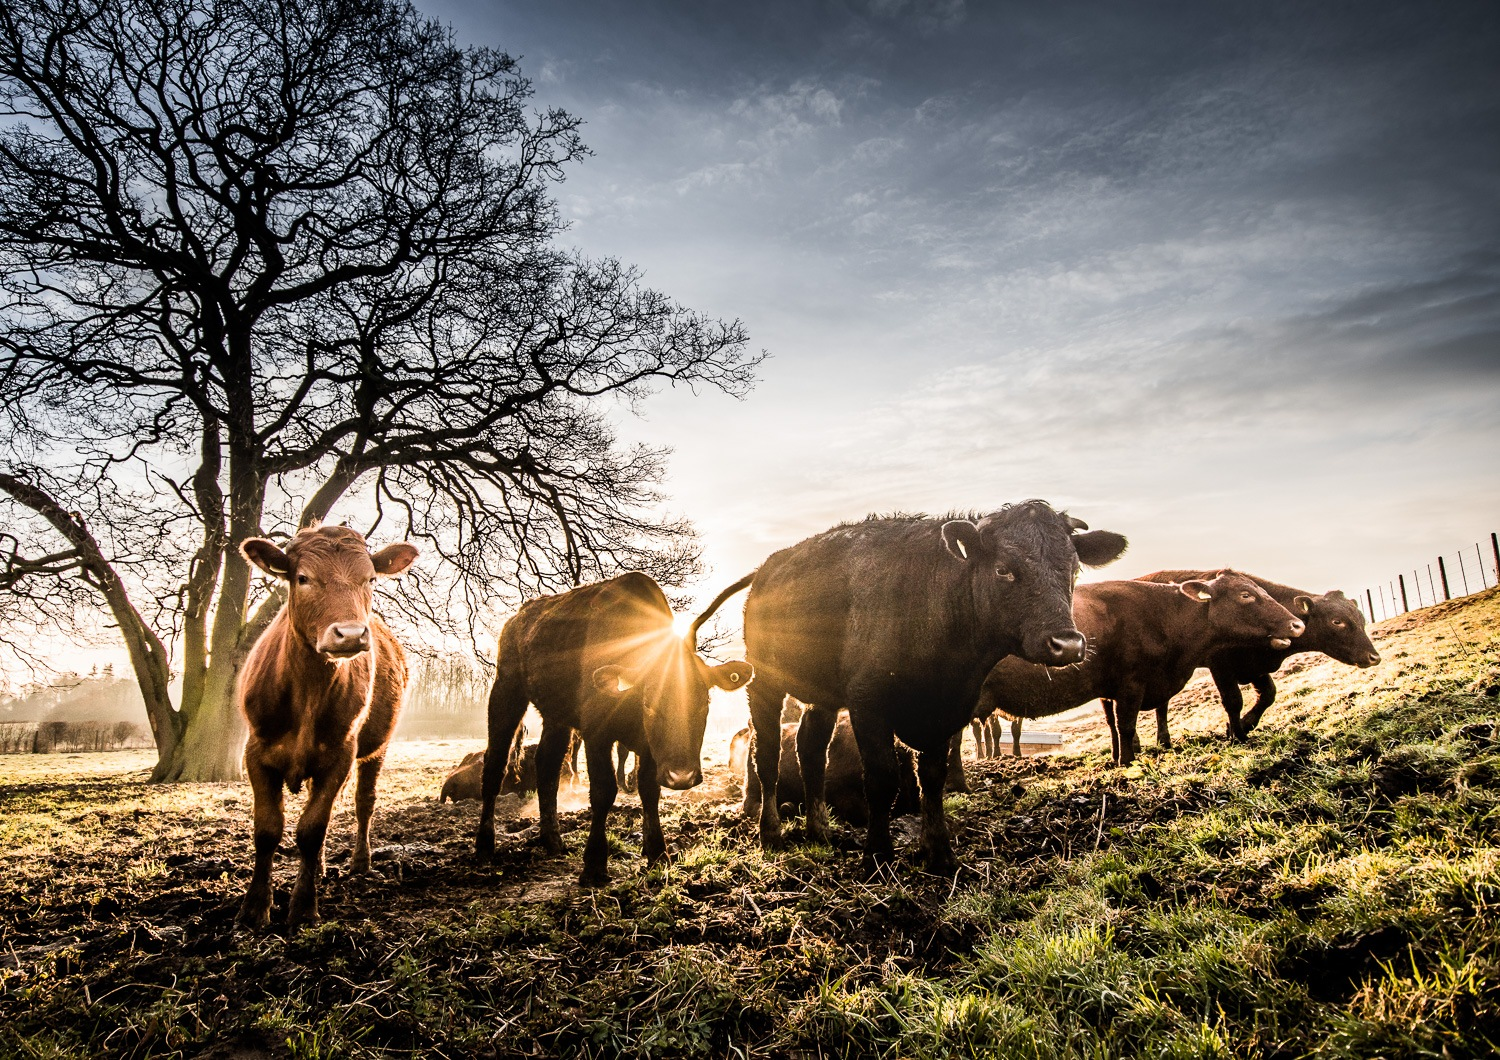 Don't mess with the cows! by Nick Ward